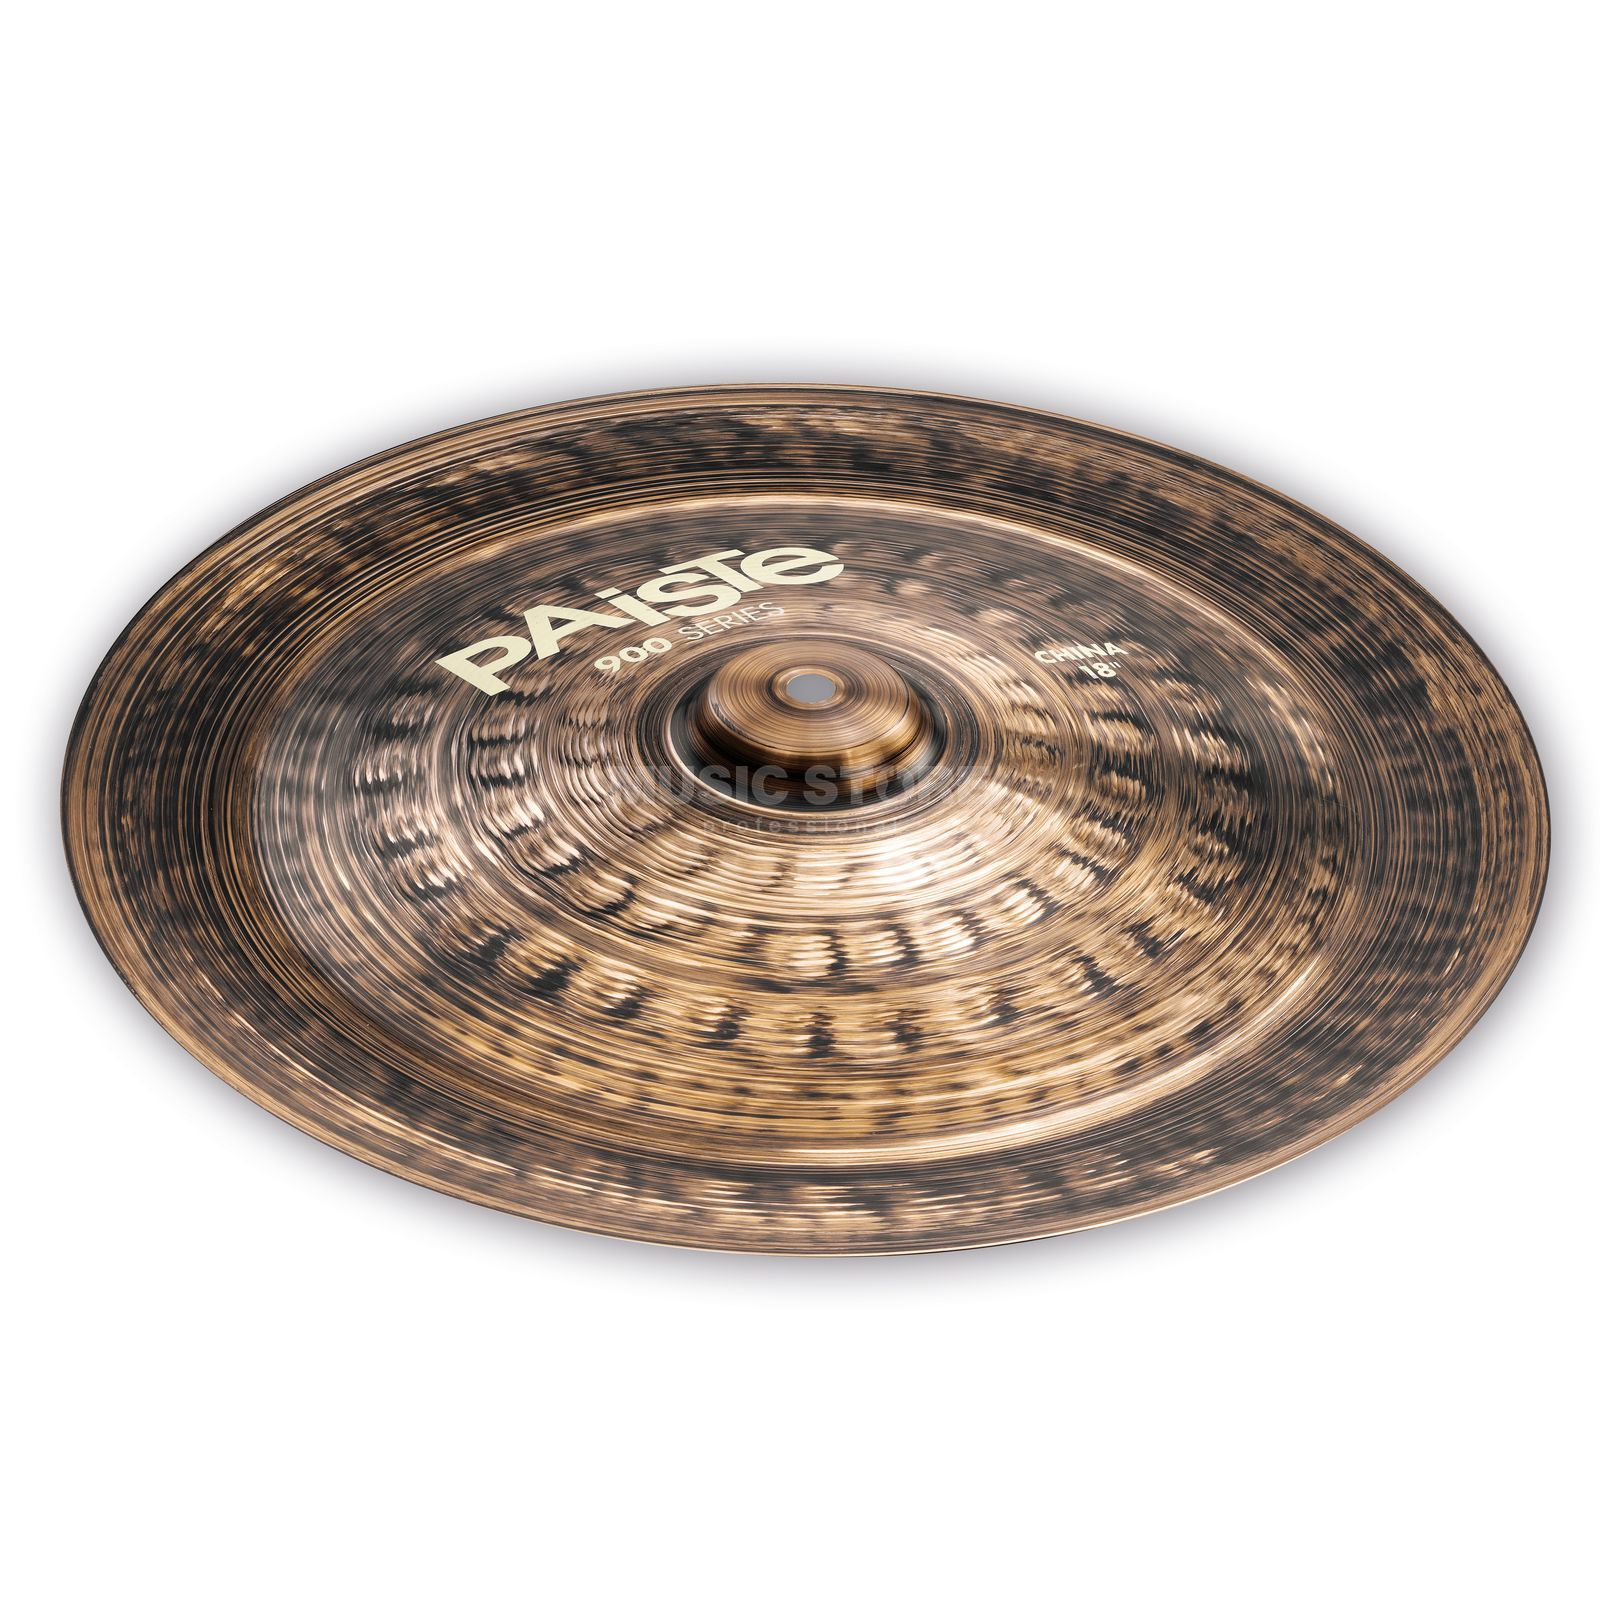 "Paiste 900 Series China 18"" Produktbild"